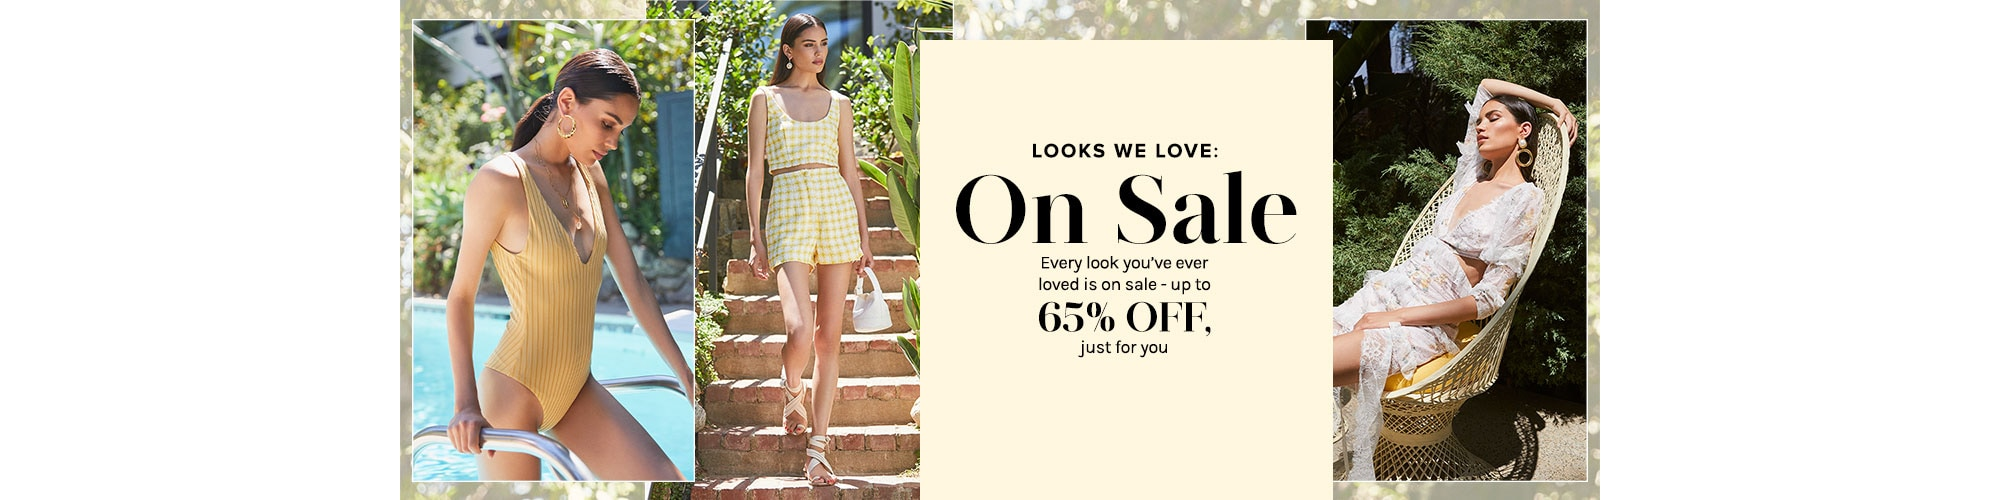 Looks We Love: On Sale. Every look you\'ve ever loved is on sale - up to 65% off, just for you. Shop The Sale.